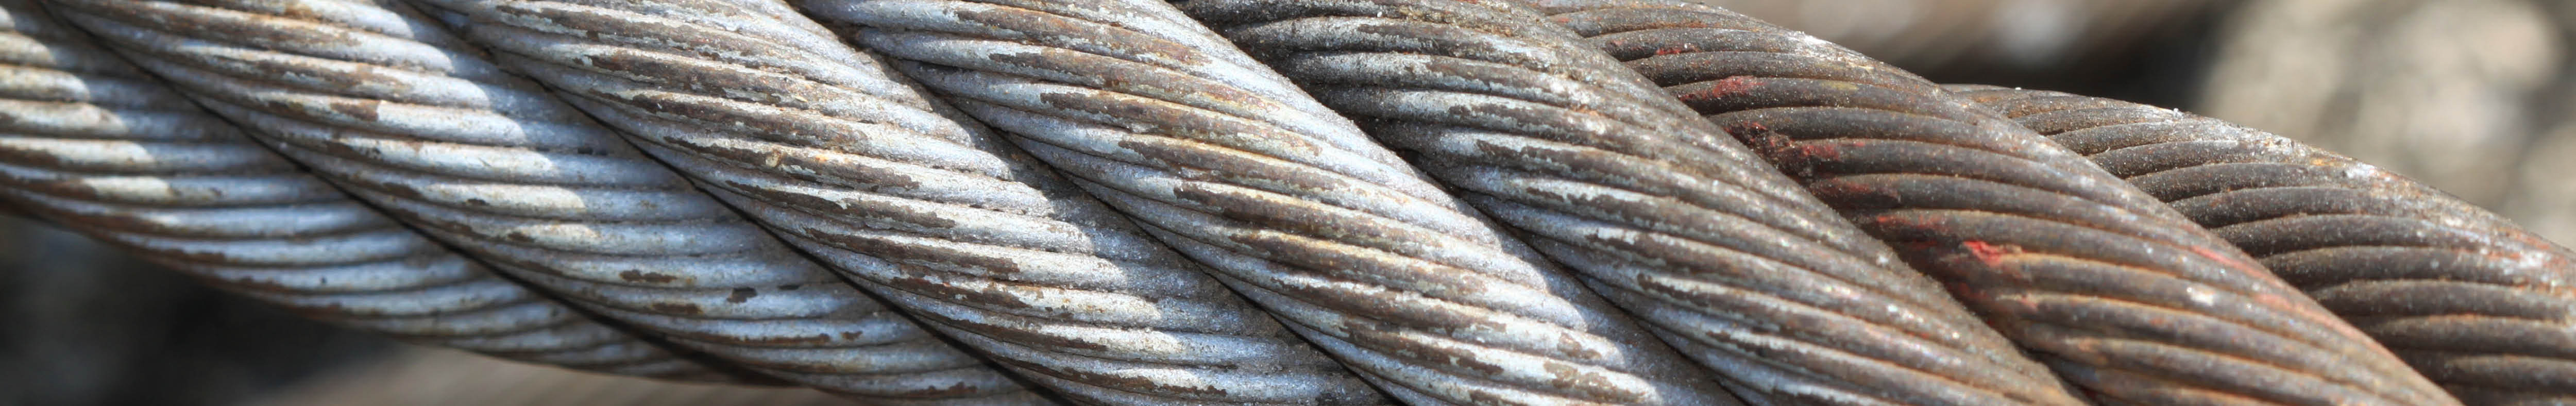 Free photo: Rusted steel wires - String, Texture, Weaved - Free ...